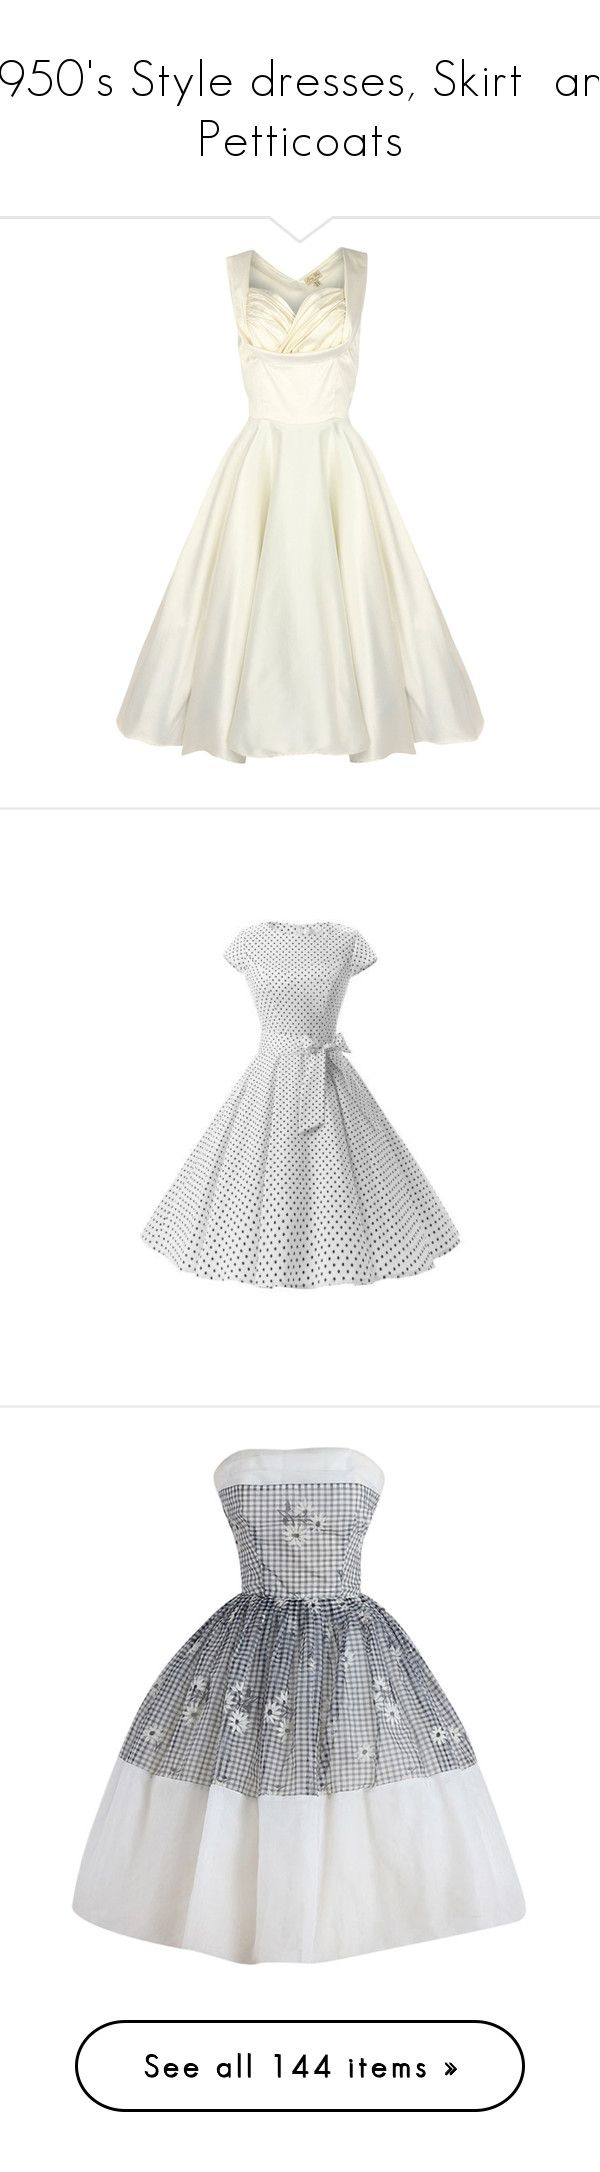 """""""1950's Style dresses, Skirt  and Petticoats"""" by jewelsinthecrown ❤ liked on Polyvore featuring dresses, vintage, robe, short dresses, short white dresses, white dresses, mini cocktail dress, vintage cocktail dresses, white prom dresses and cap sleeve polka dot dress"""